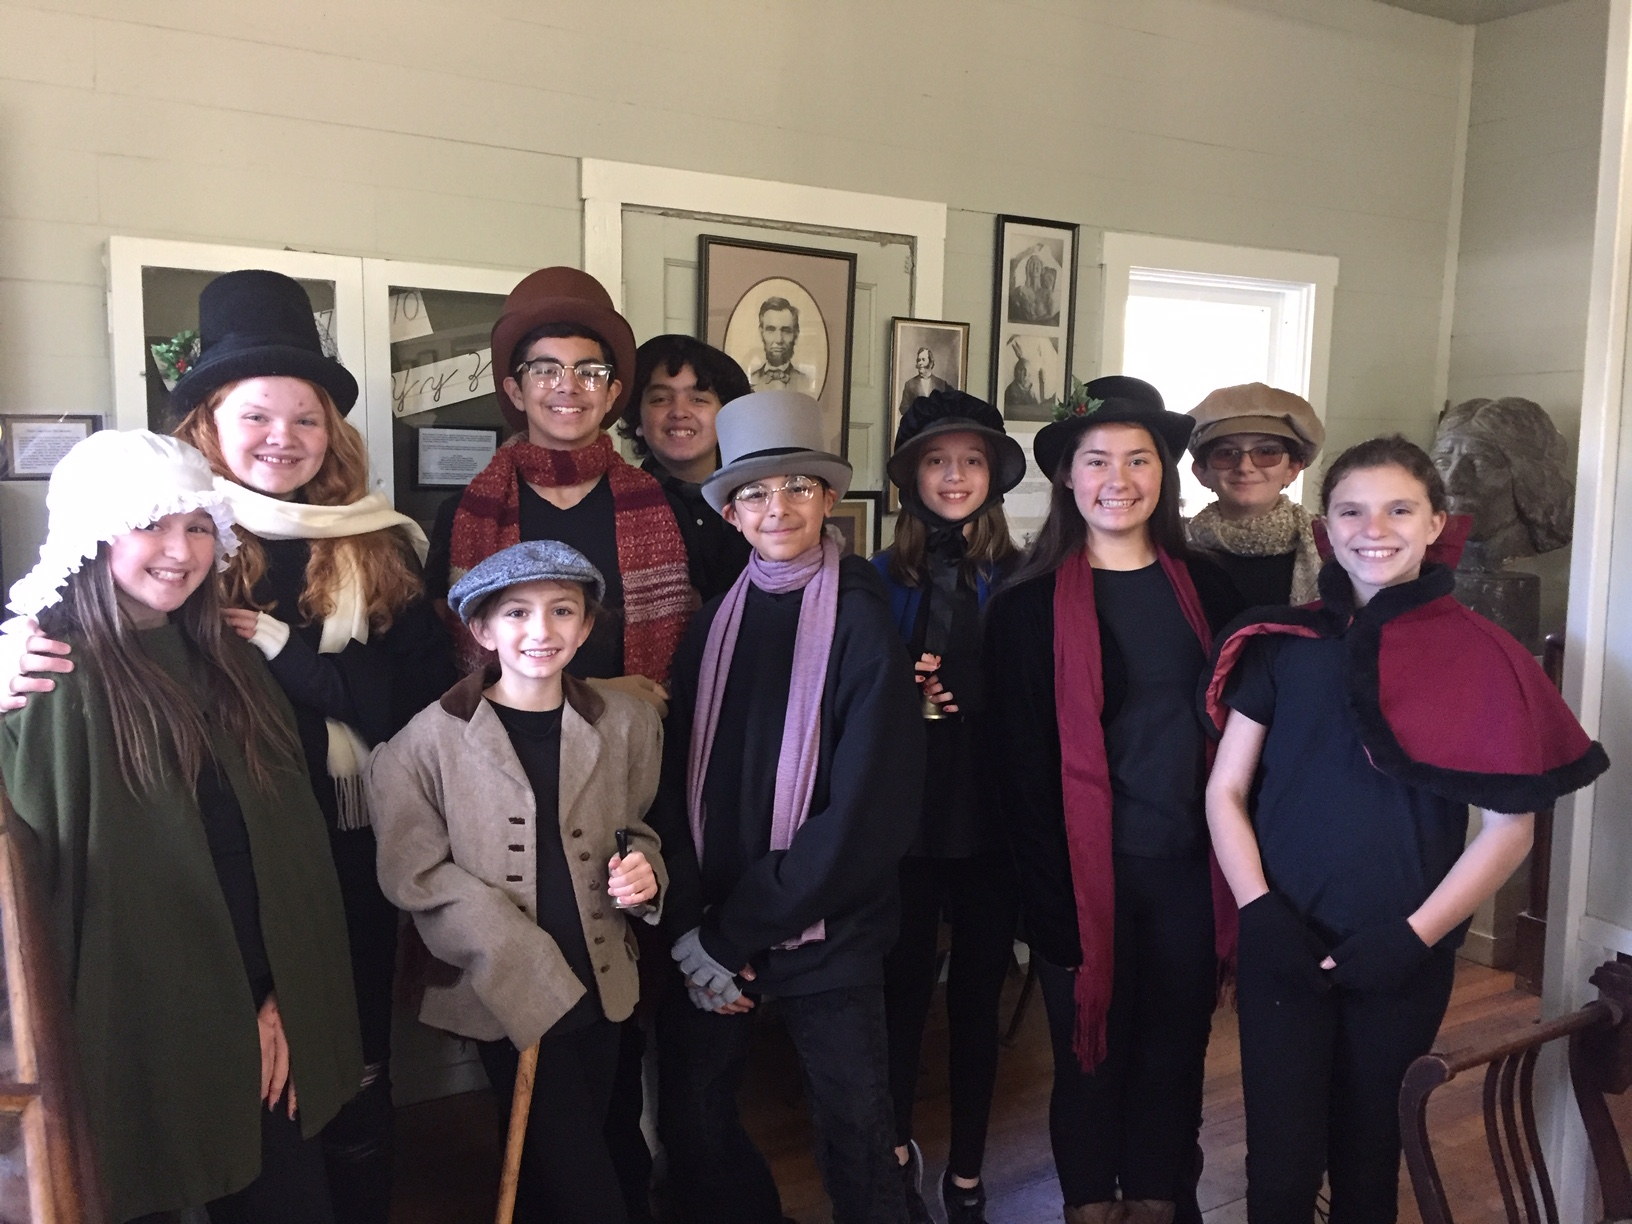 Singers from the Starbound Theater will sing Christmas Carols at the Peña Adobe!